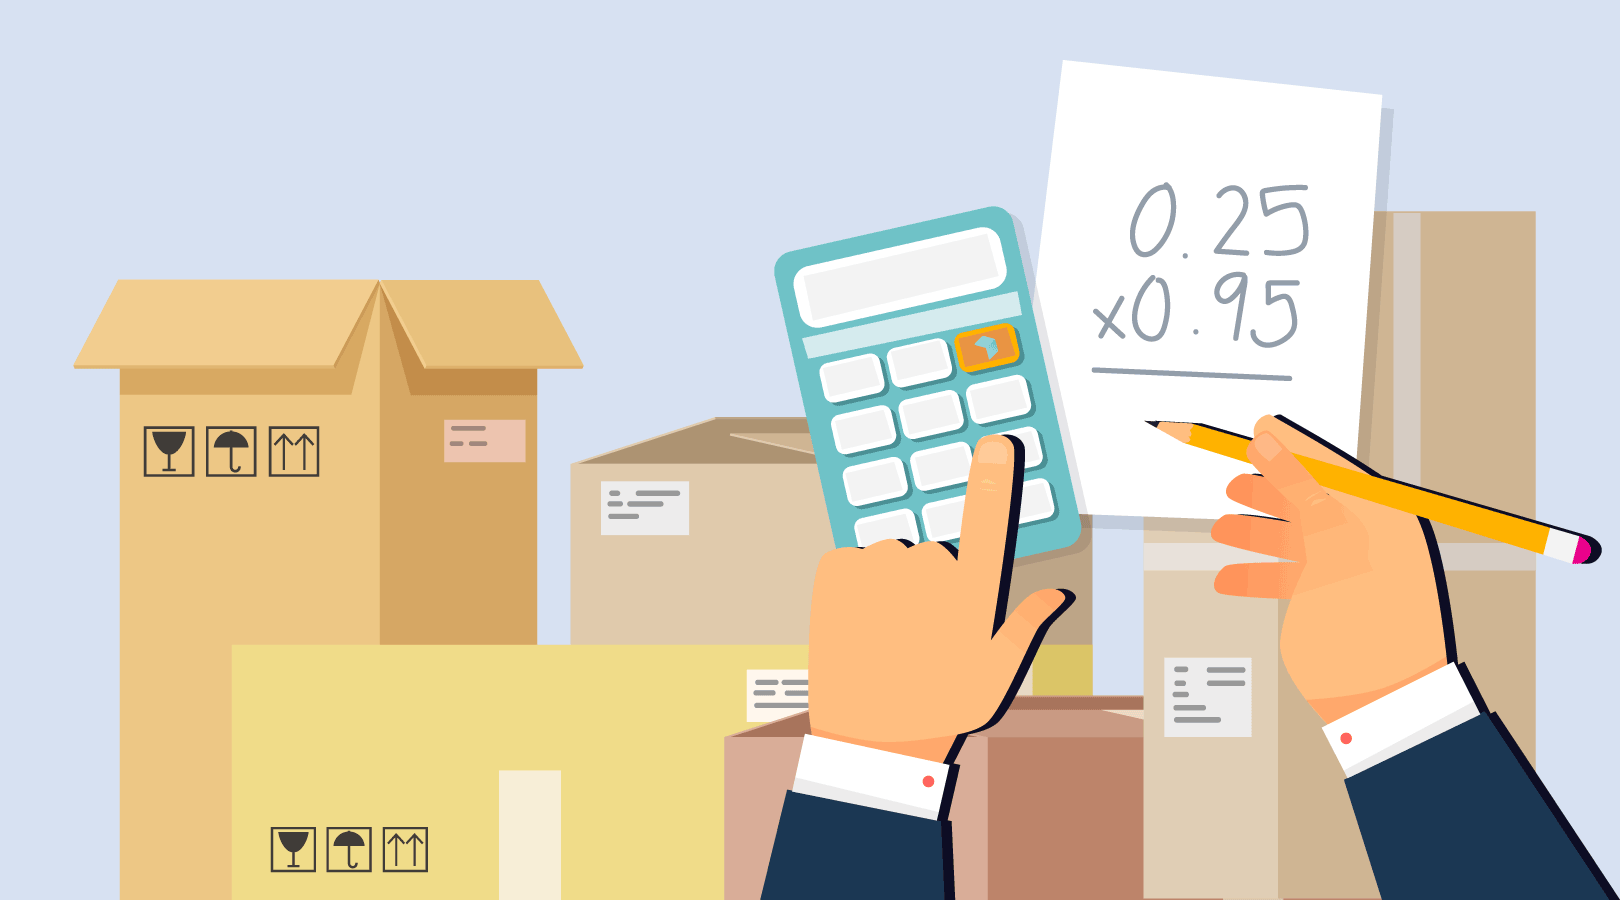 Easyship Feature: A Guide to Calculating and Displaying Taxes